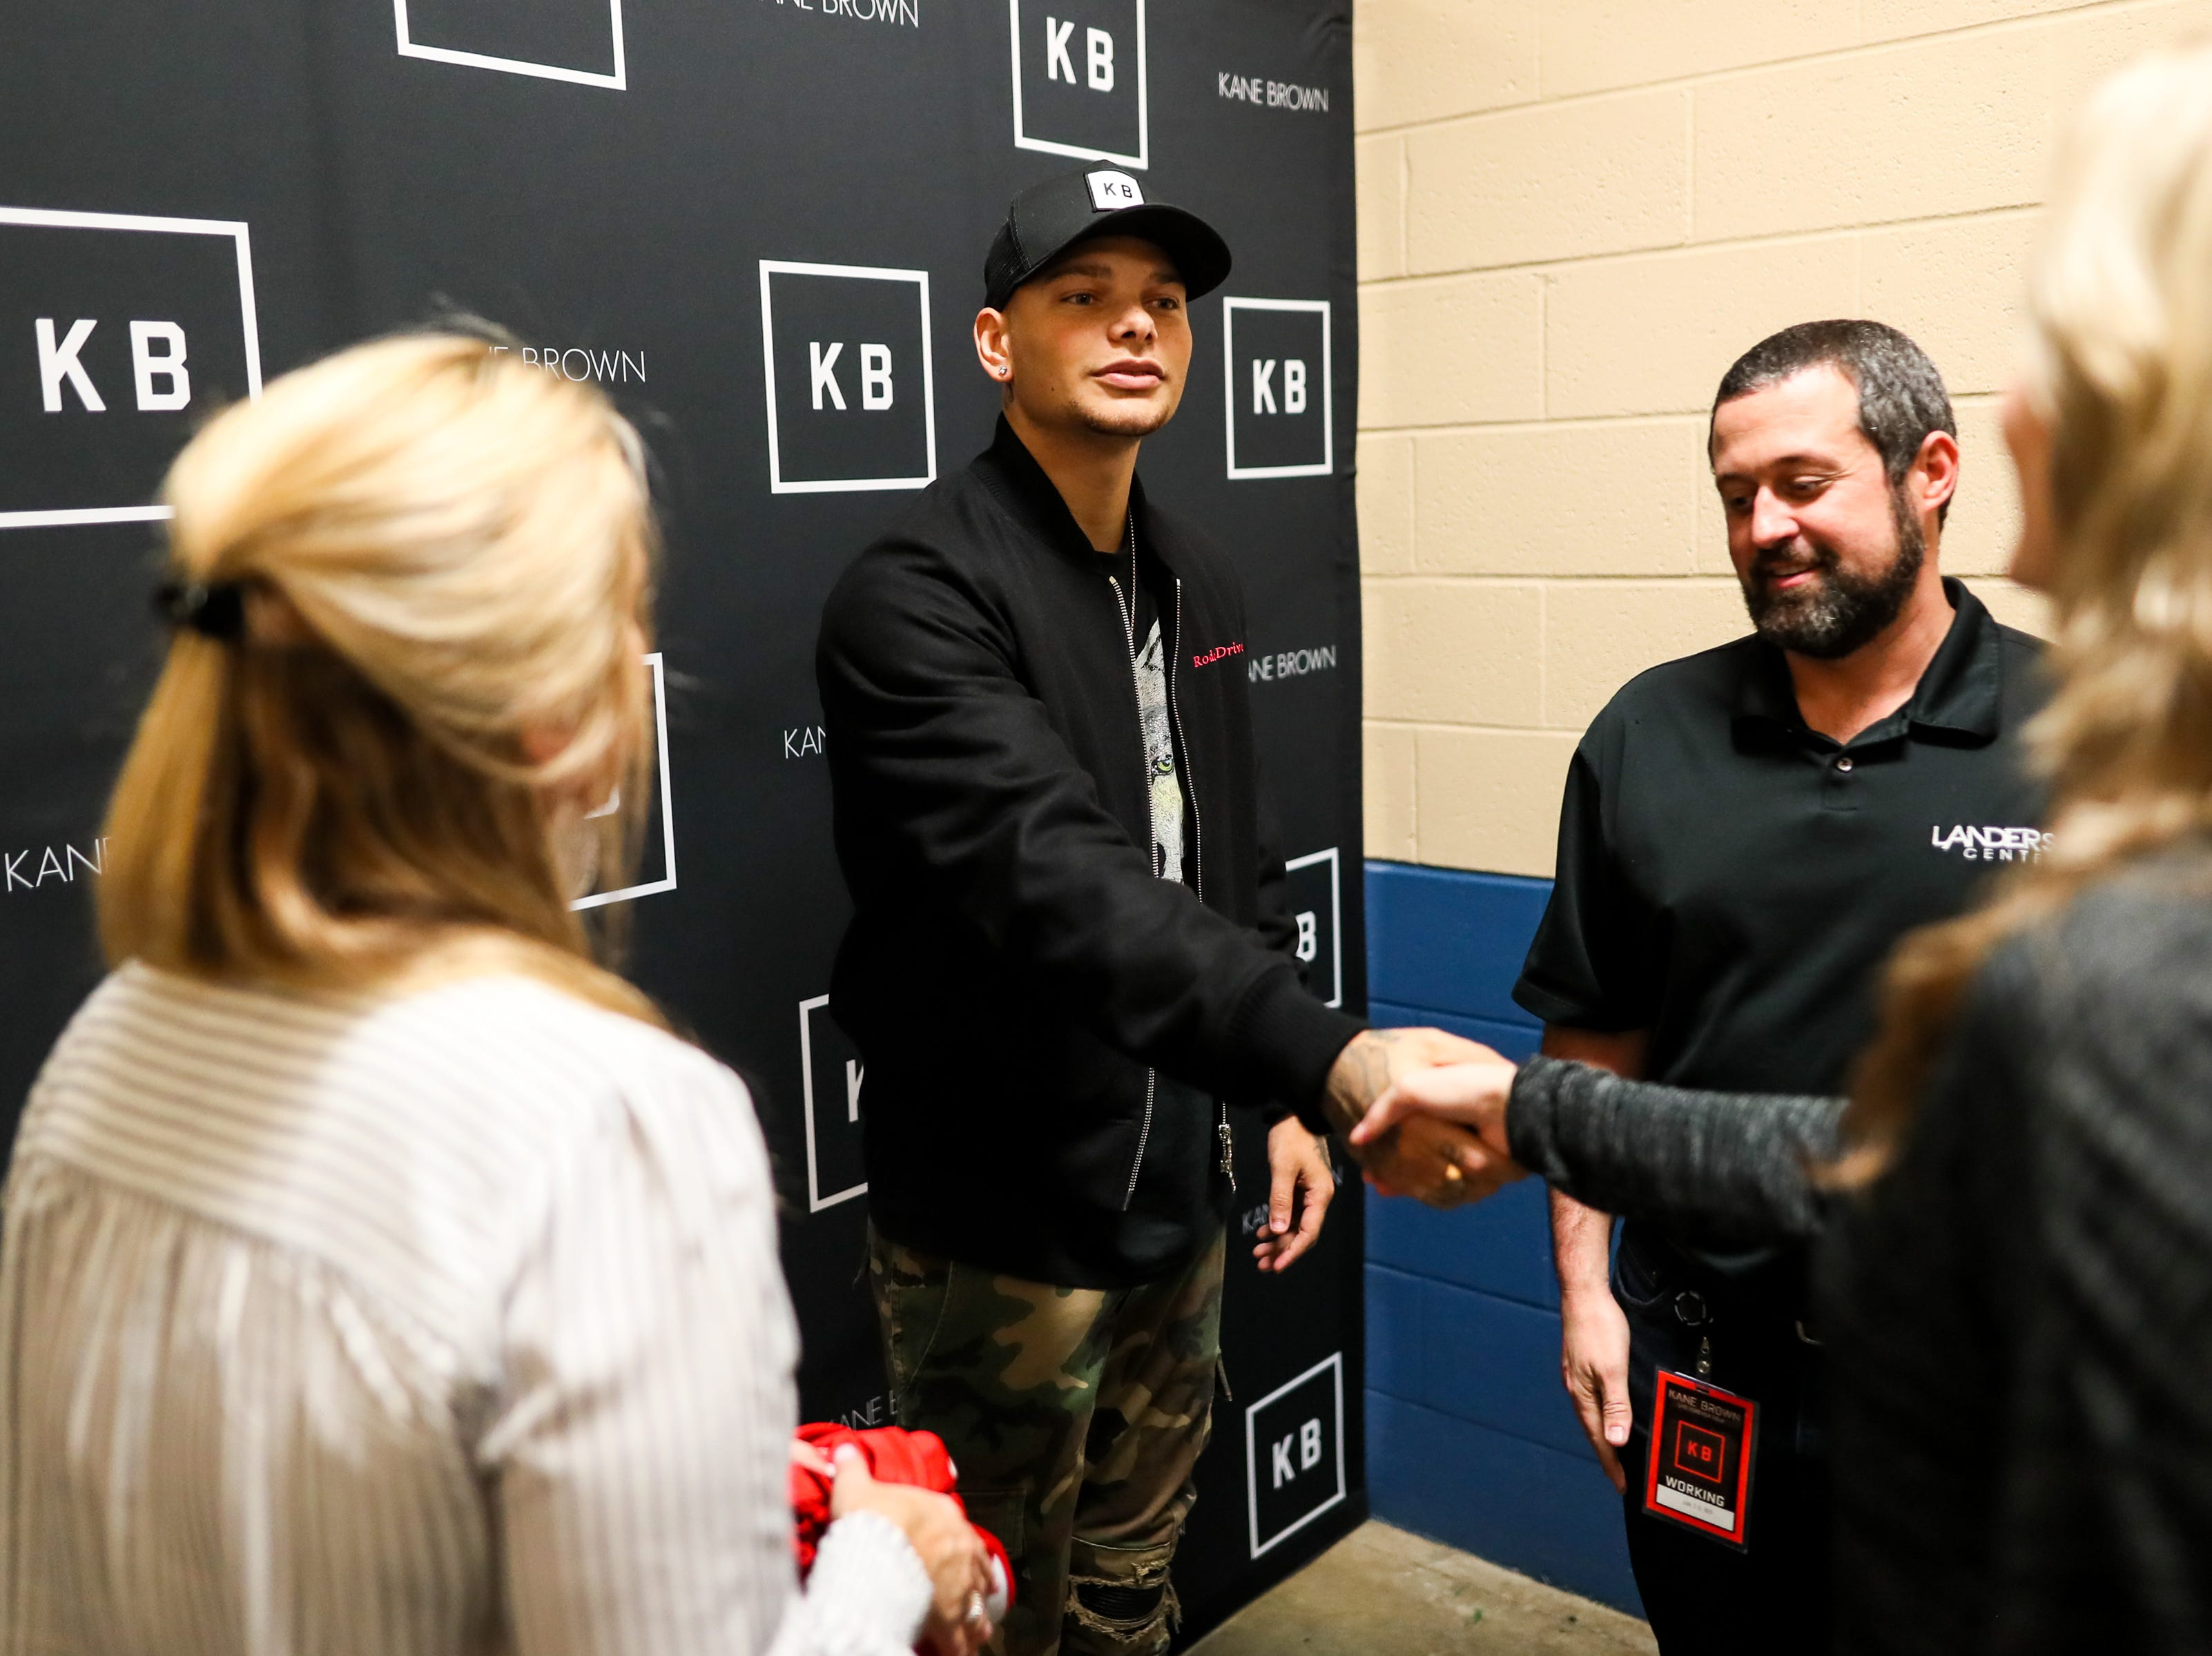 Kane Brown greets fans backstage before his concert at the Landers Center in Southaven, Miss., Friday, Jan. 18, 2019.